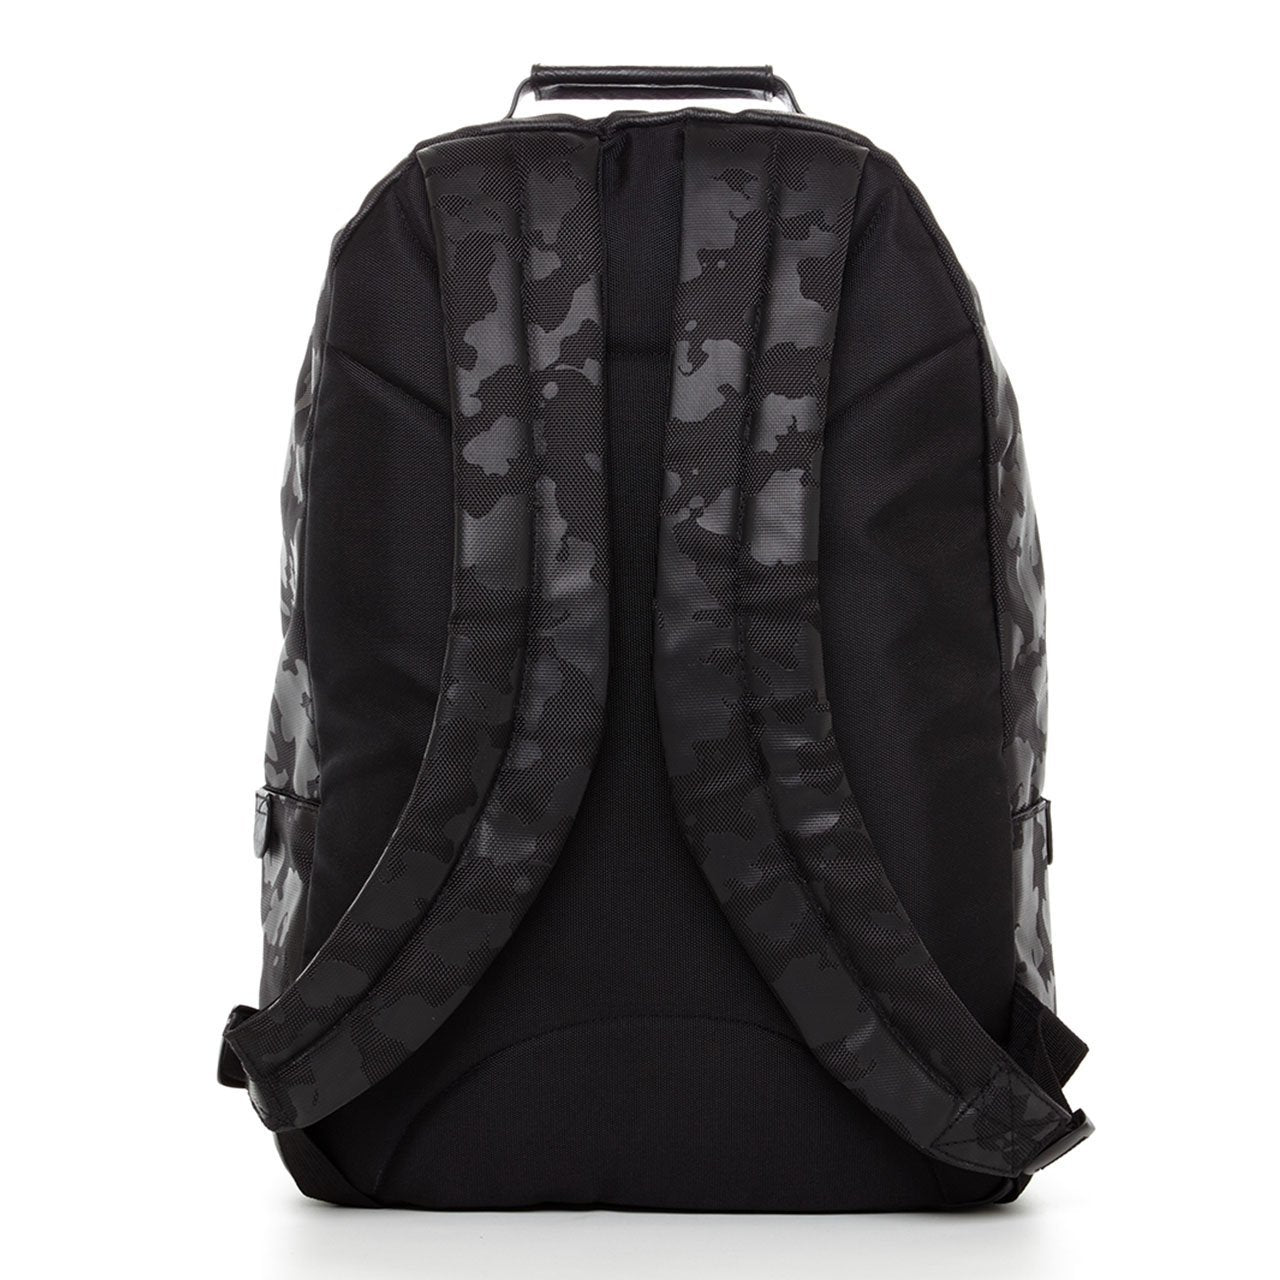 Backpack - Arlo Camouflage Backpack